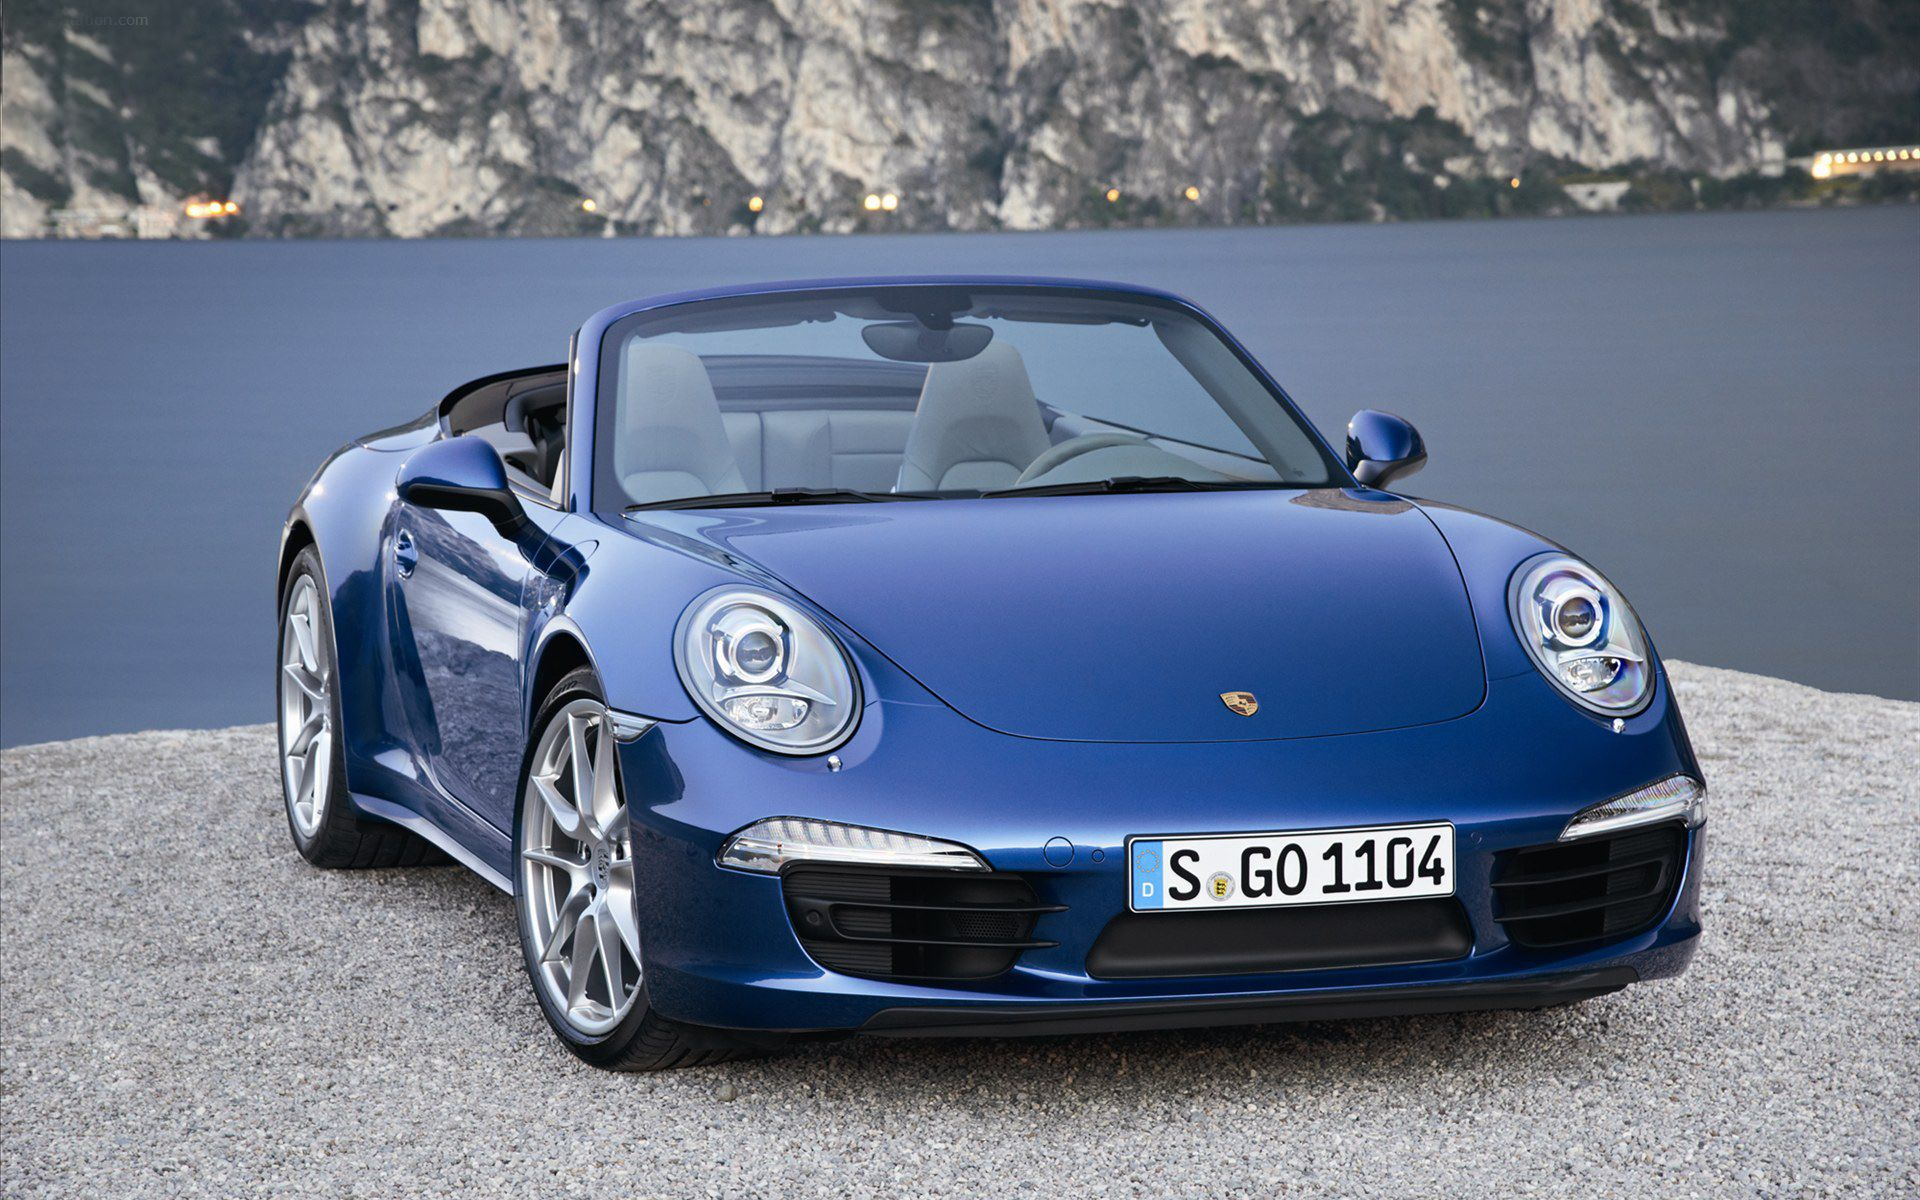 Click here to download in hd format porsche 911 carrera 4 cabriolet 2013 hd